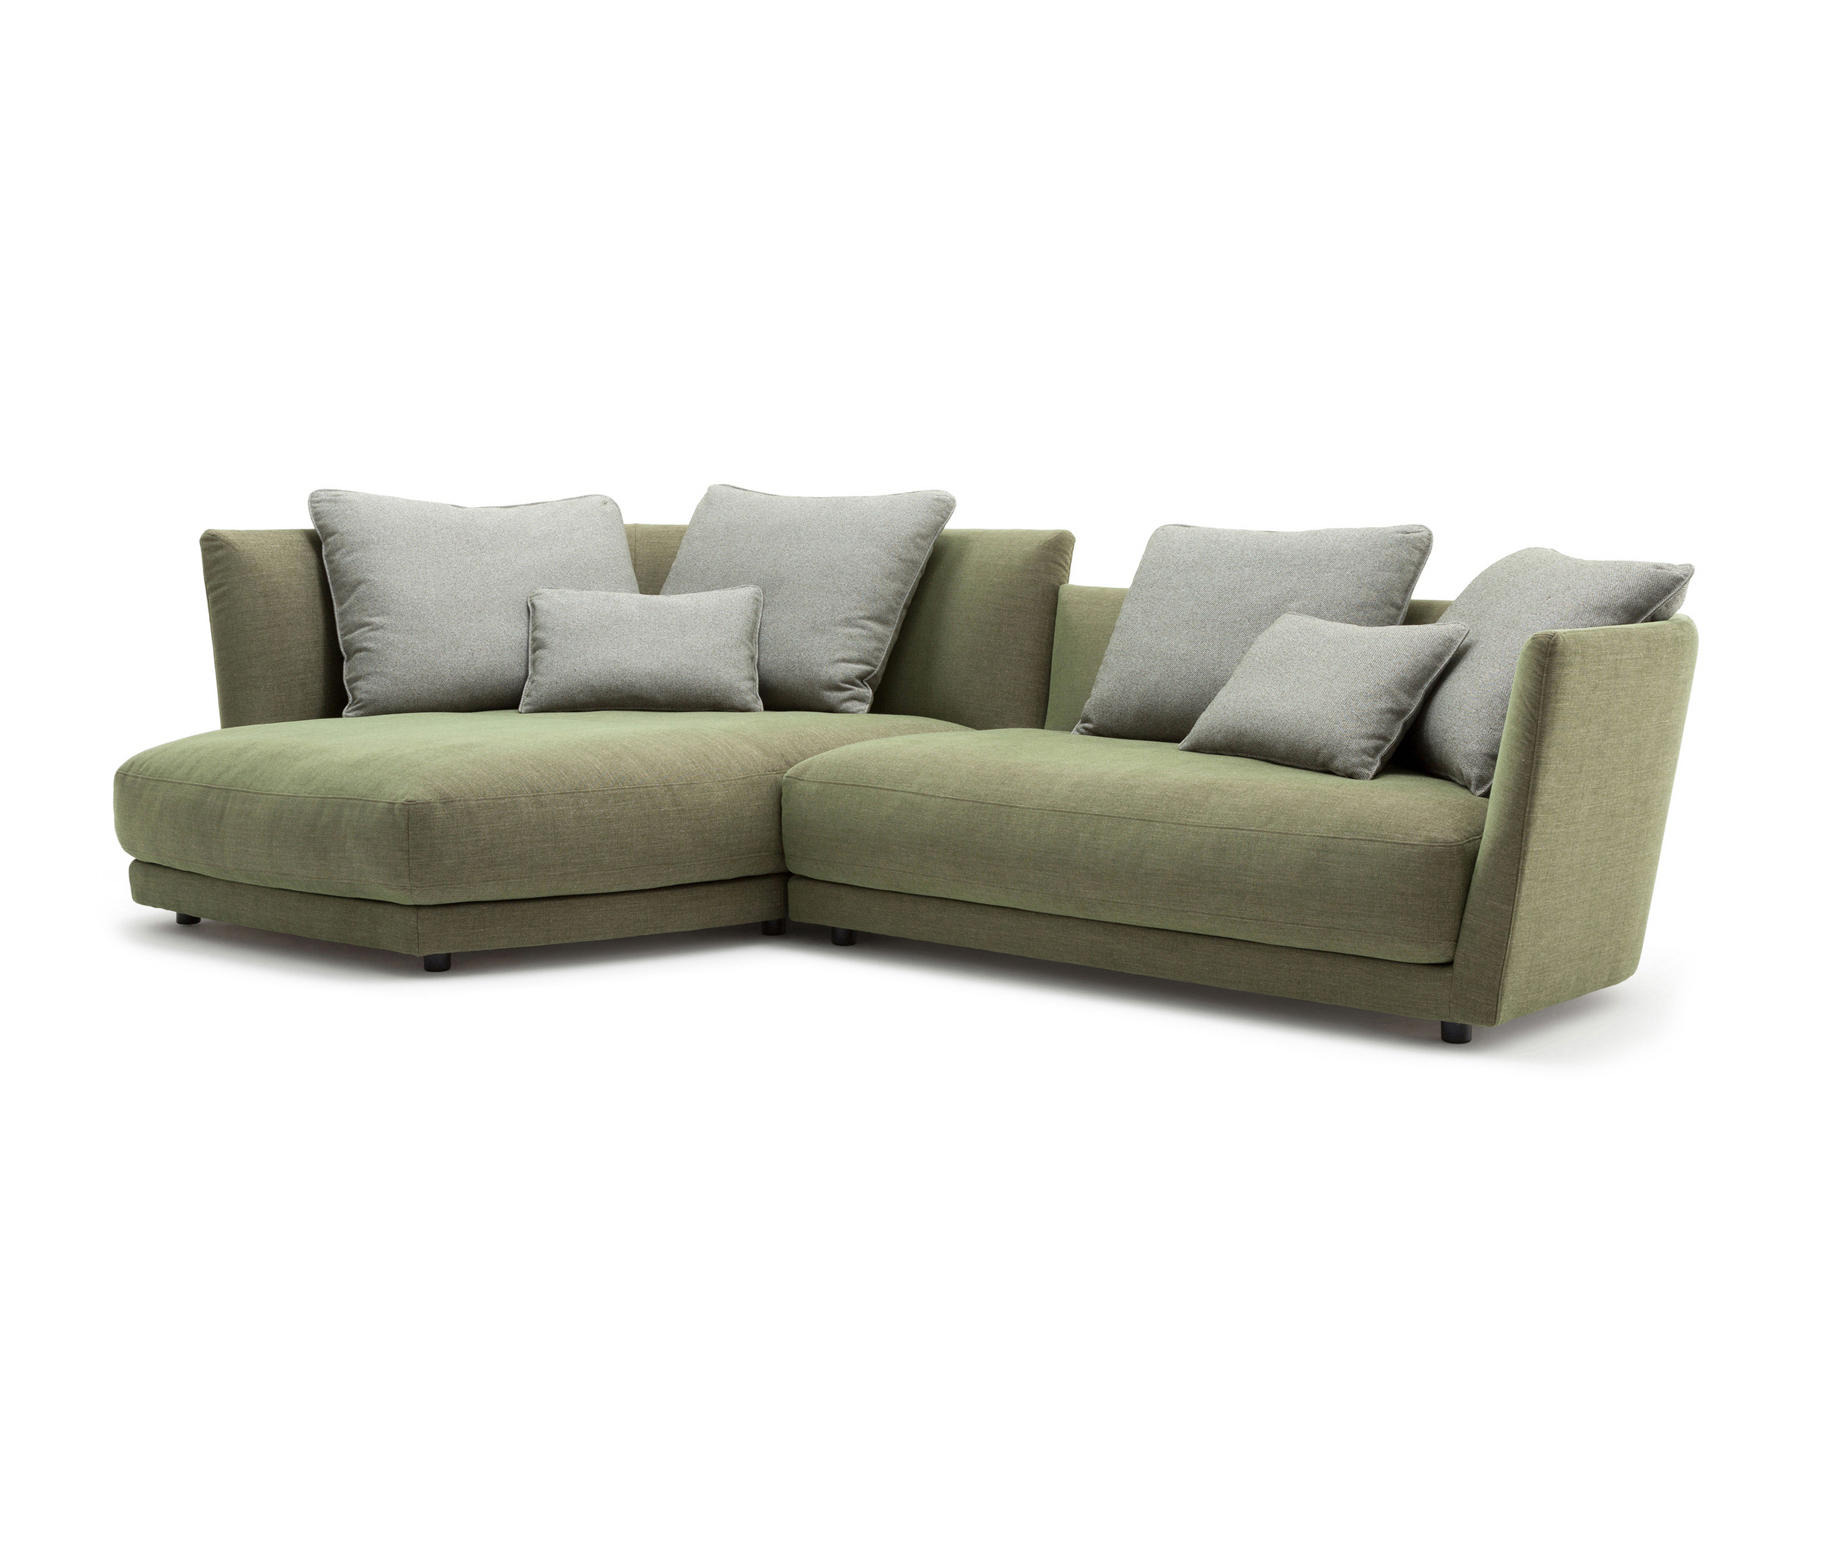 Rolf Benz Sofa Rolf Benz Tondo Sofas From Rolf Benz Architonic